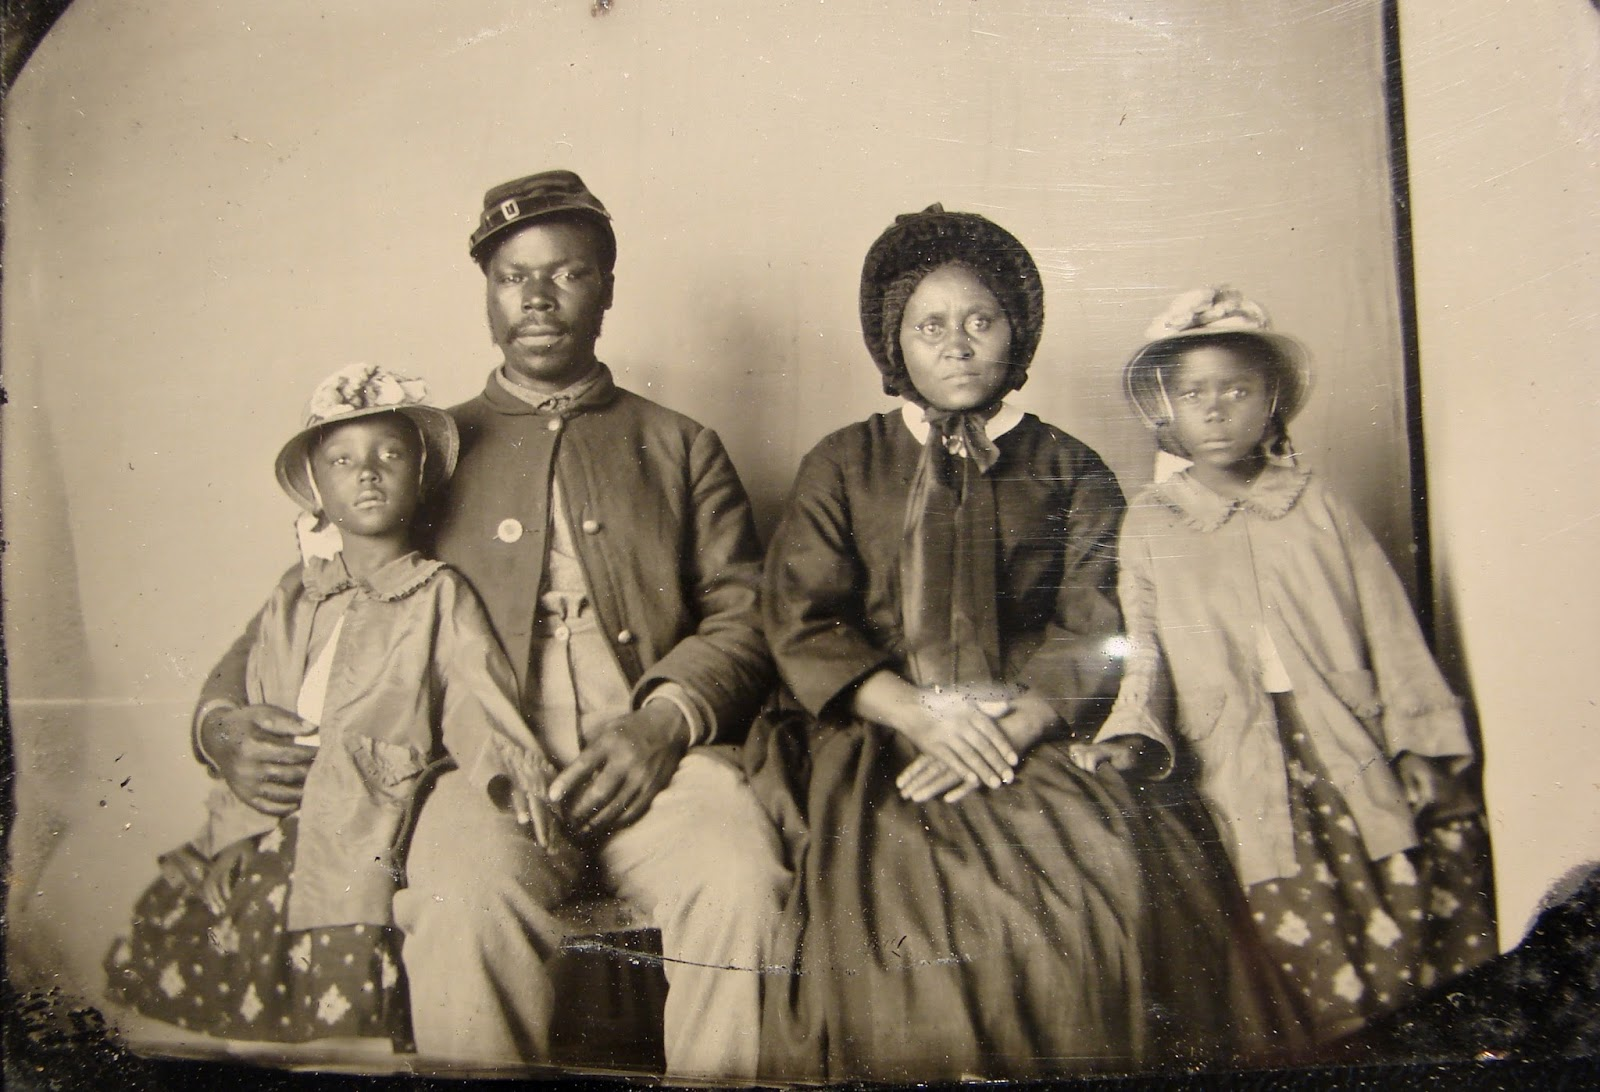 25 Breathtaking Photos From The Past - The only known photograph of an African American Union soldier with his family. c1863-65